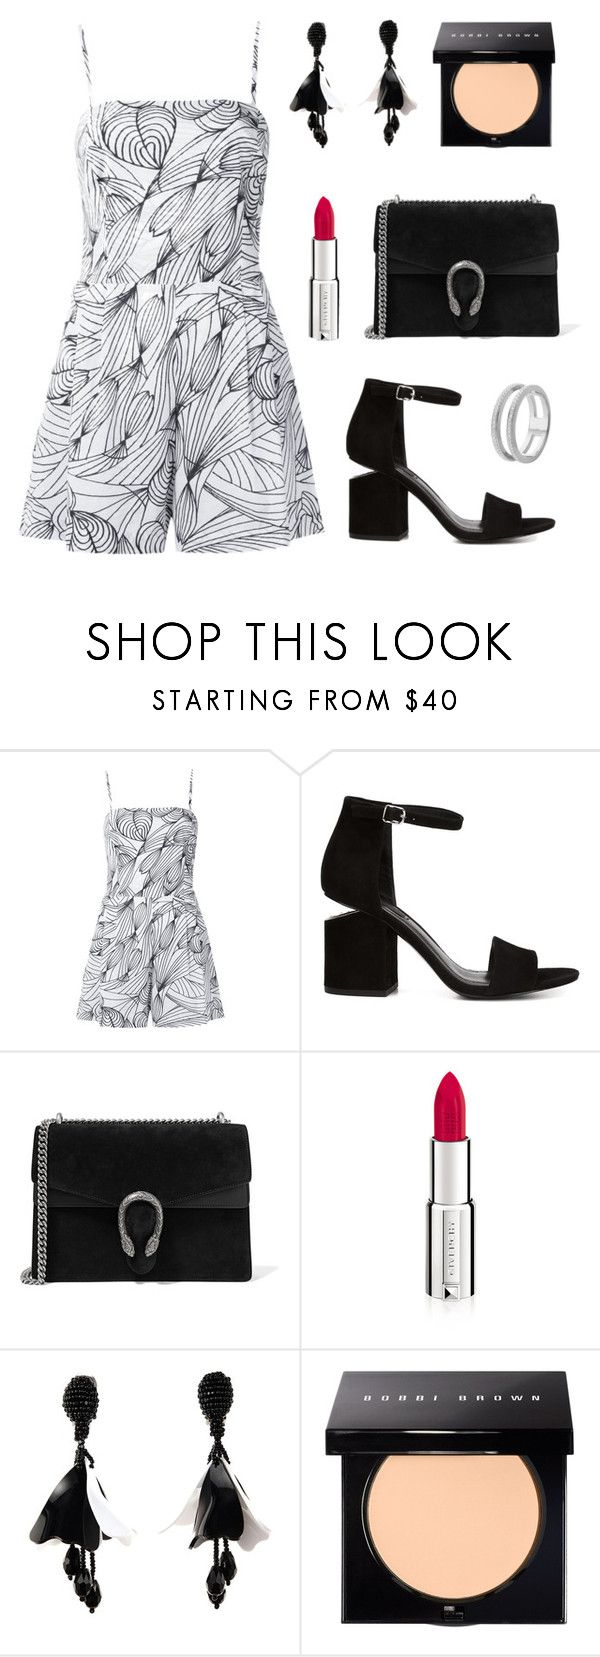 """""""Play Time"""" by tasha-m-e ❤ liked on Polyvore featuring Isolda, Alexander Wang, Gucci, Givenchy, Oscar de la Renta, Bobbi Brown Cosmetics and Monica Vinader"""